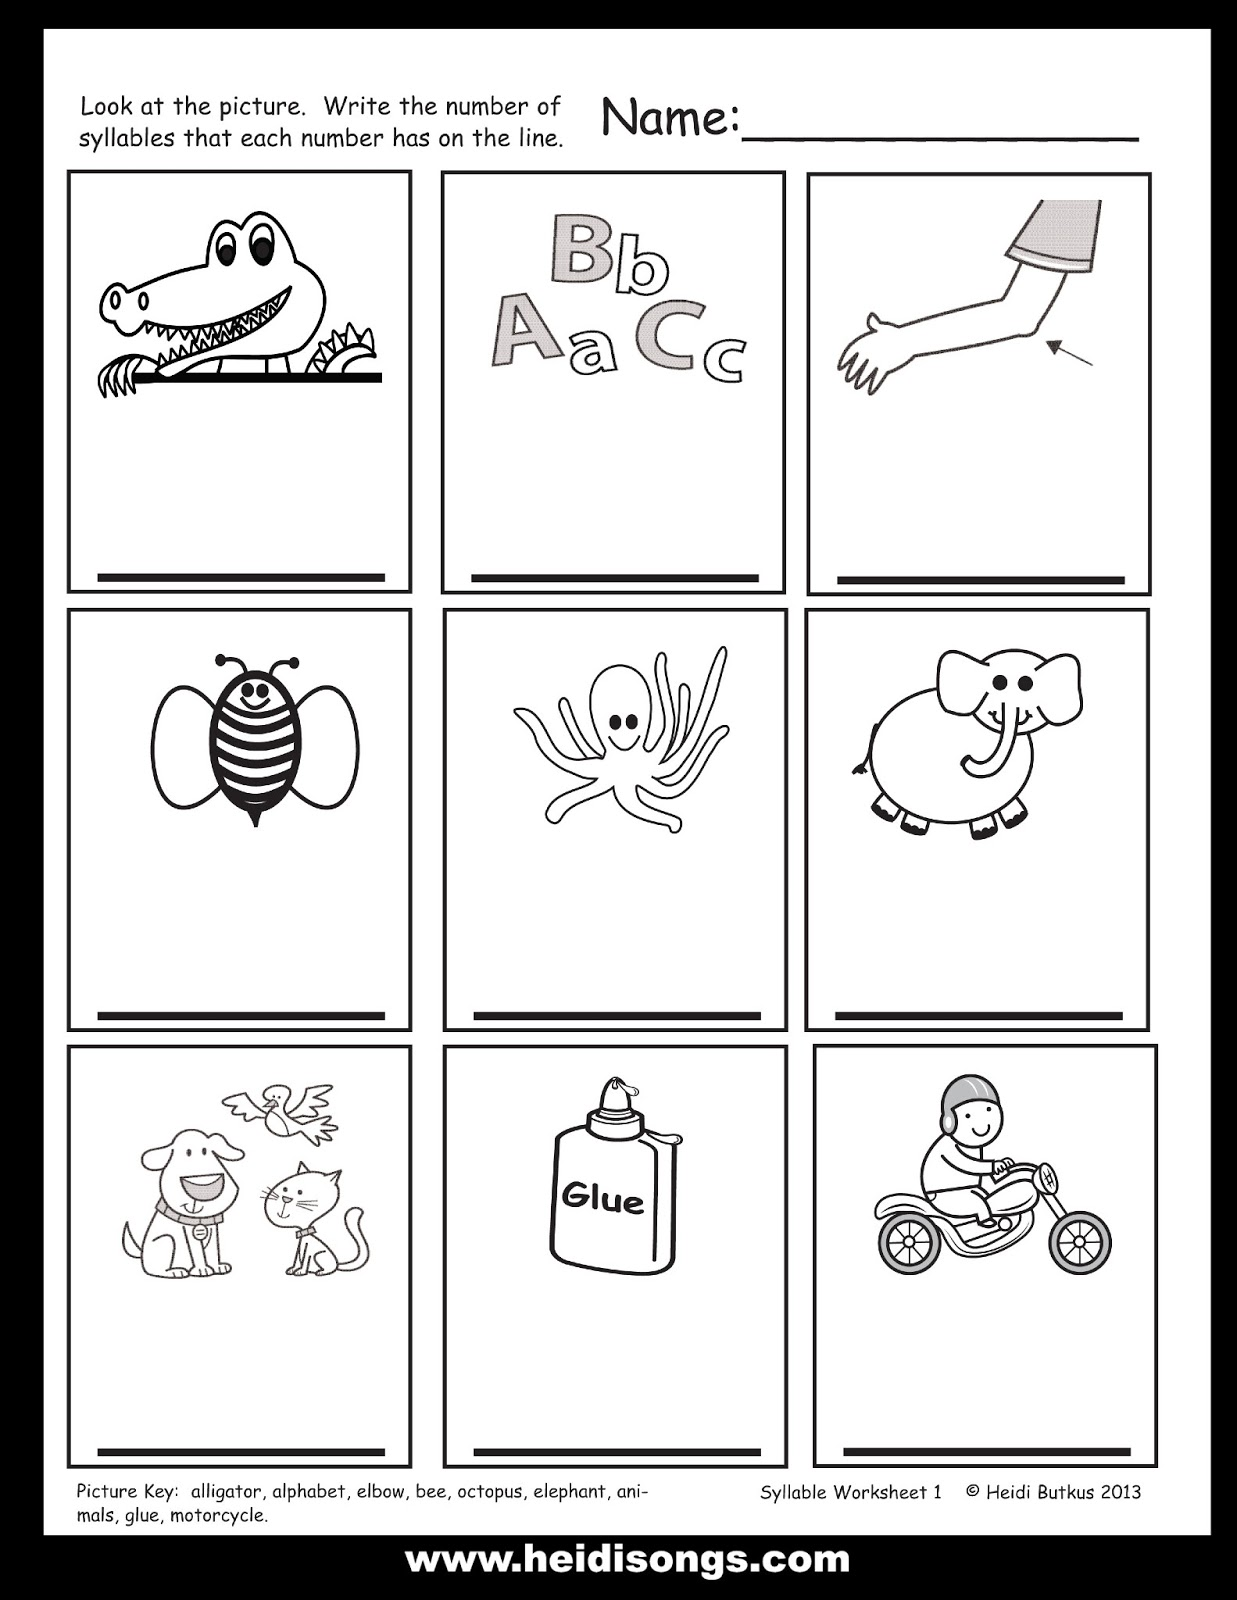 Kindergarten Syllable Worksheets - Synhoff